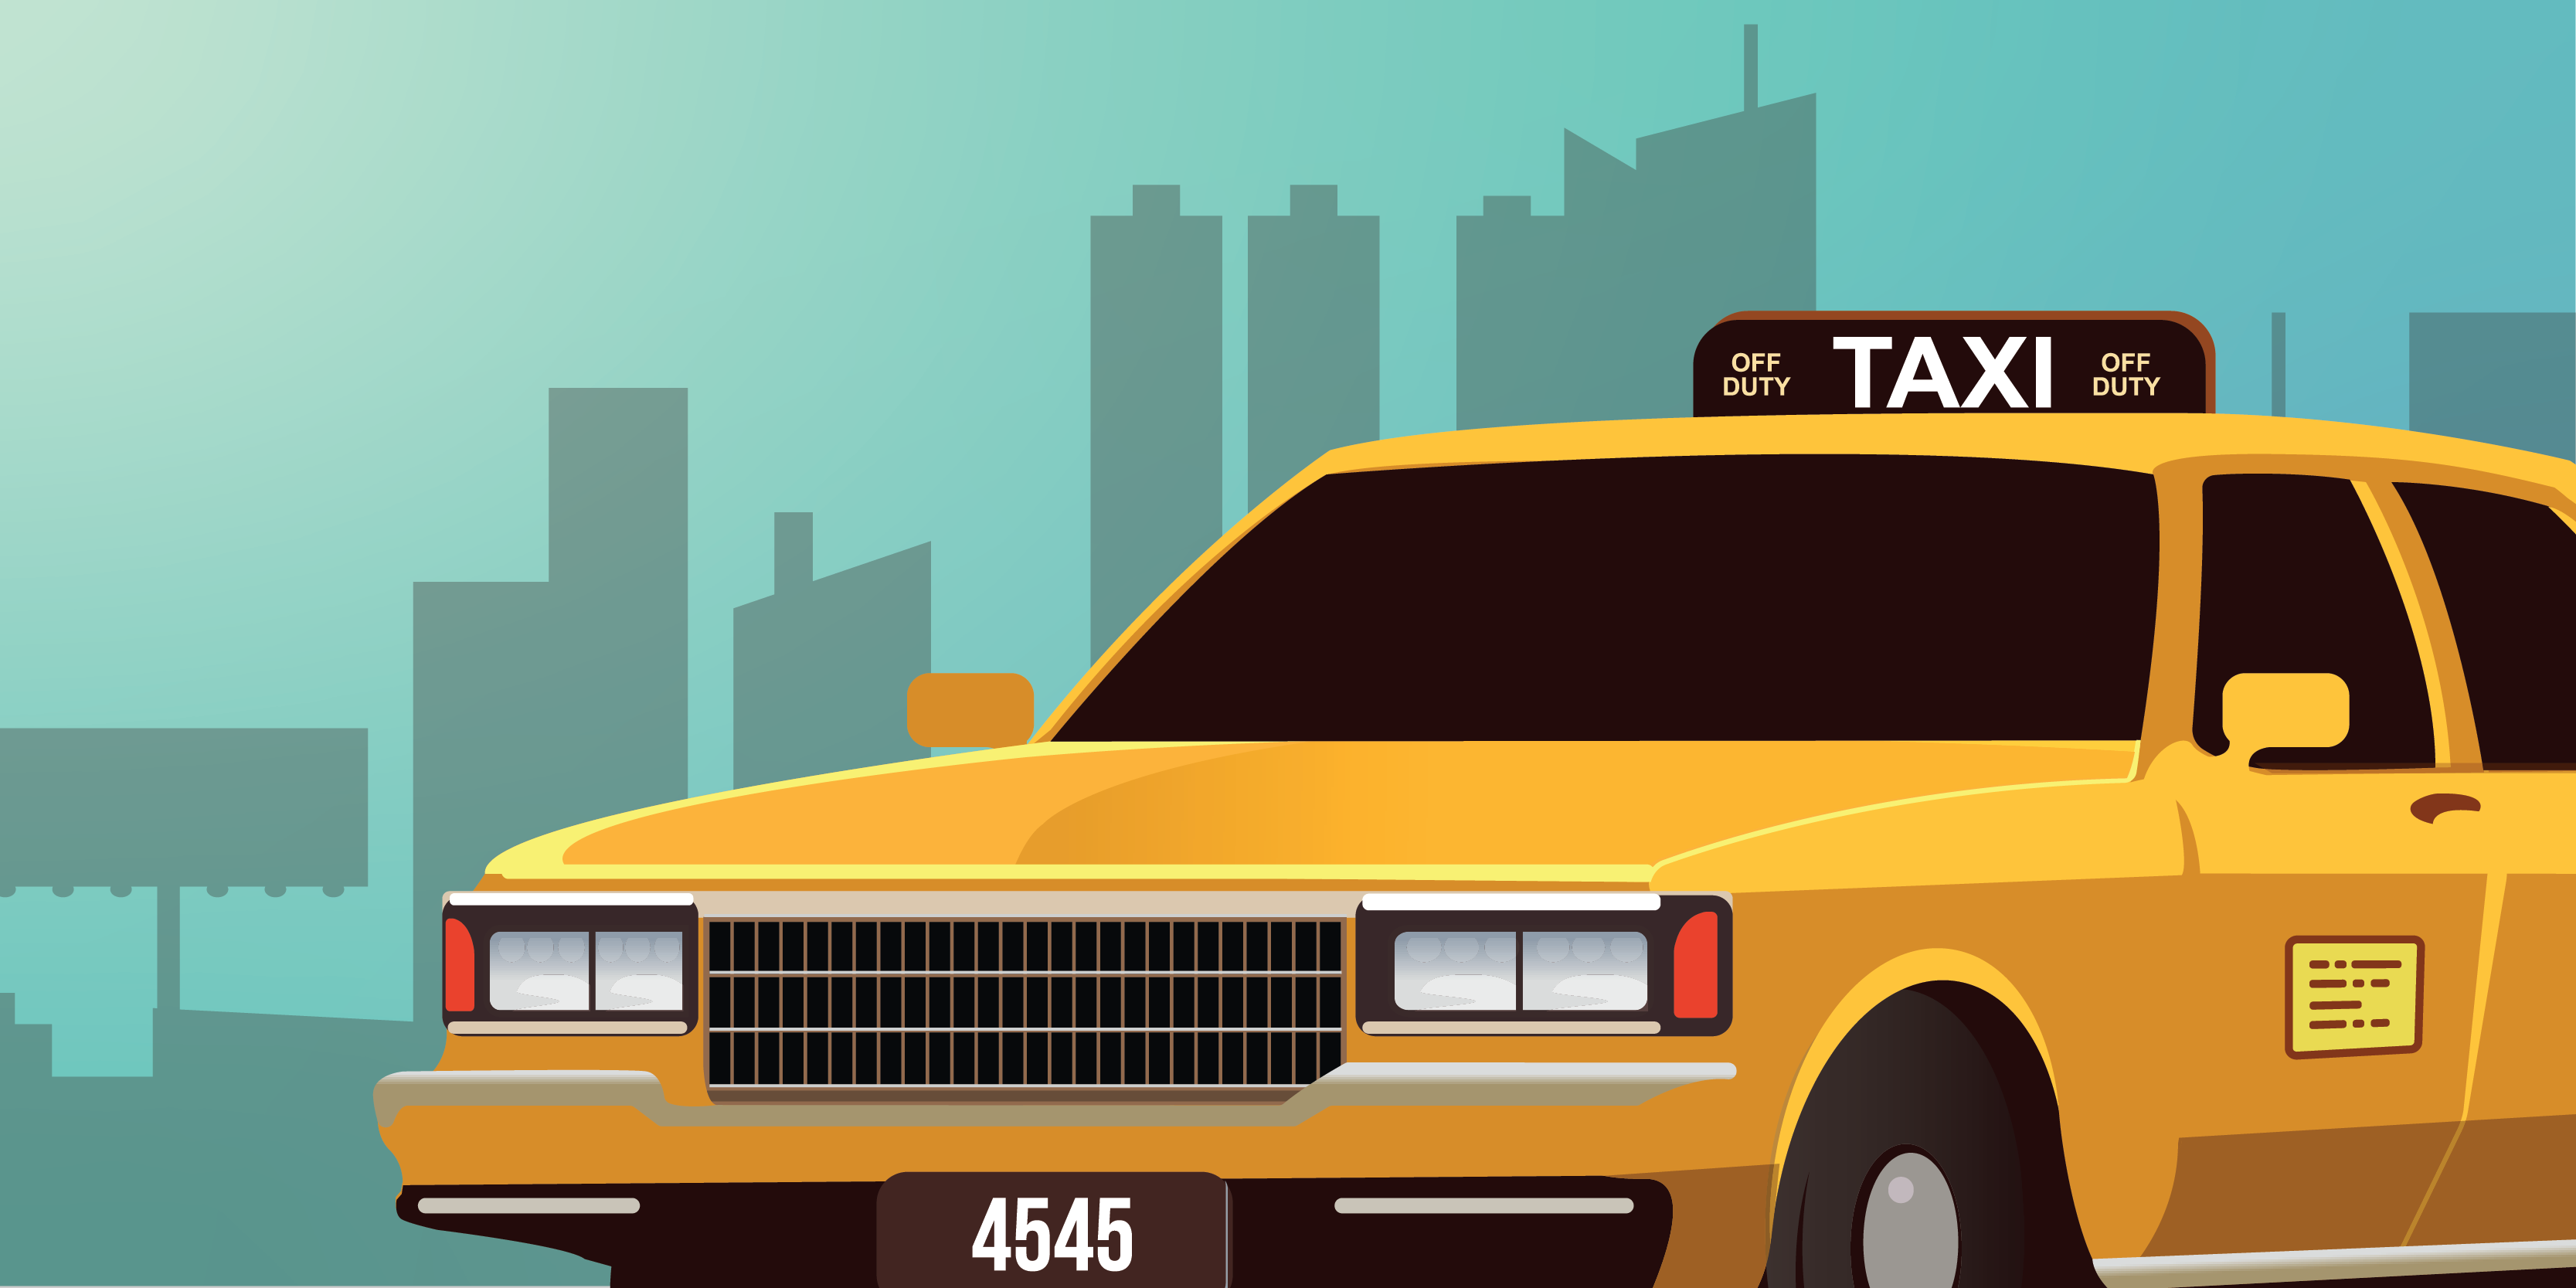 Are RIAs headed for their own taxi medallion moment?